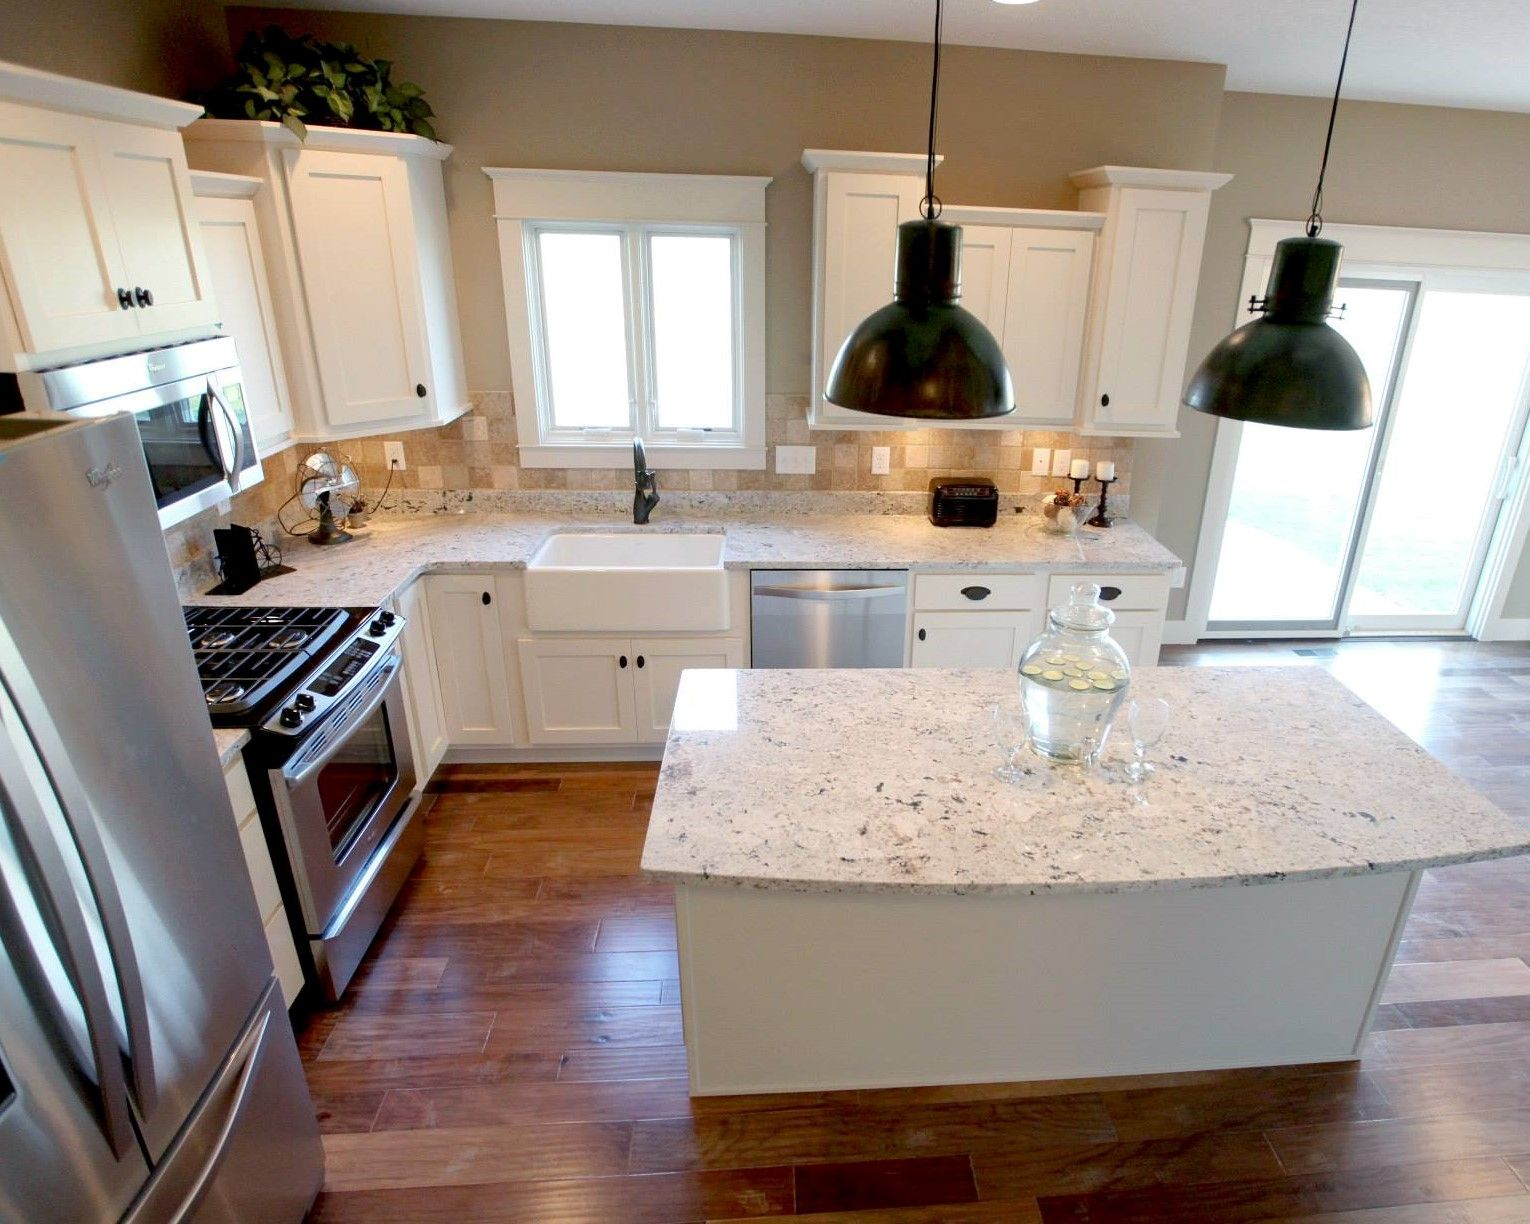 Beau L Shaped #kitchen Layout With An #arched Overhang On The #island. | Photo  By Applestone Homes, Davenport, IA